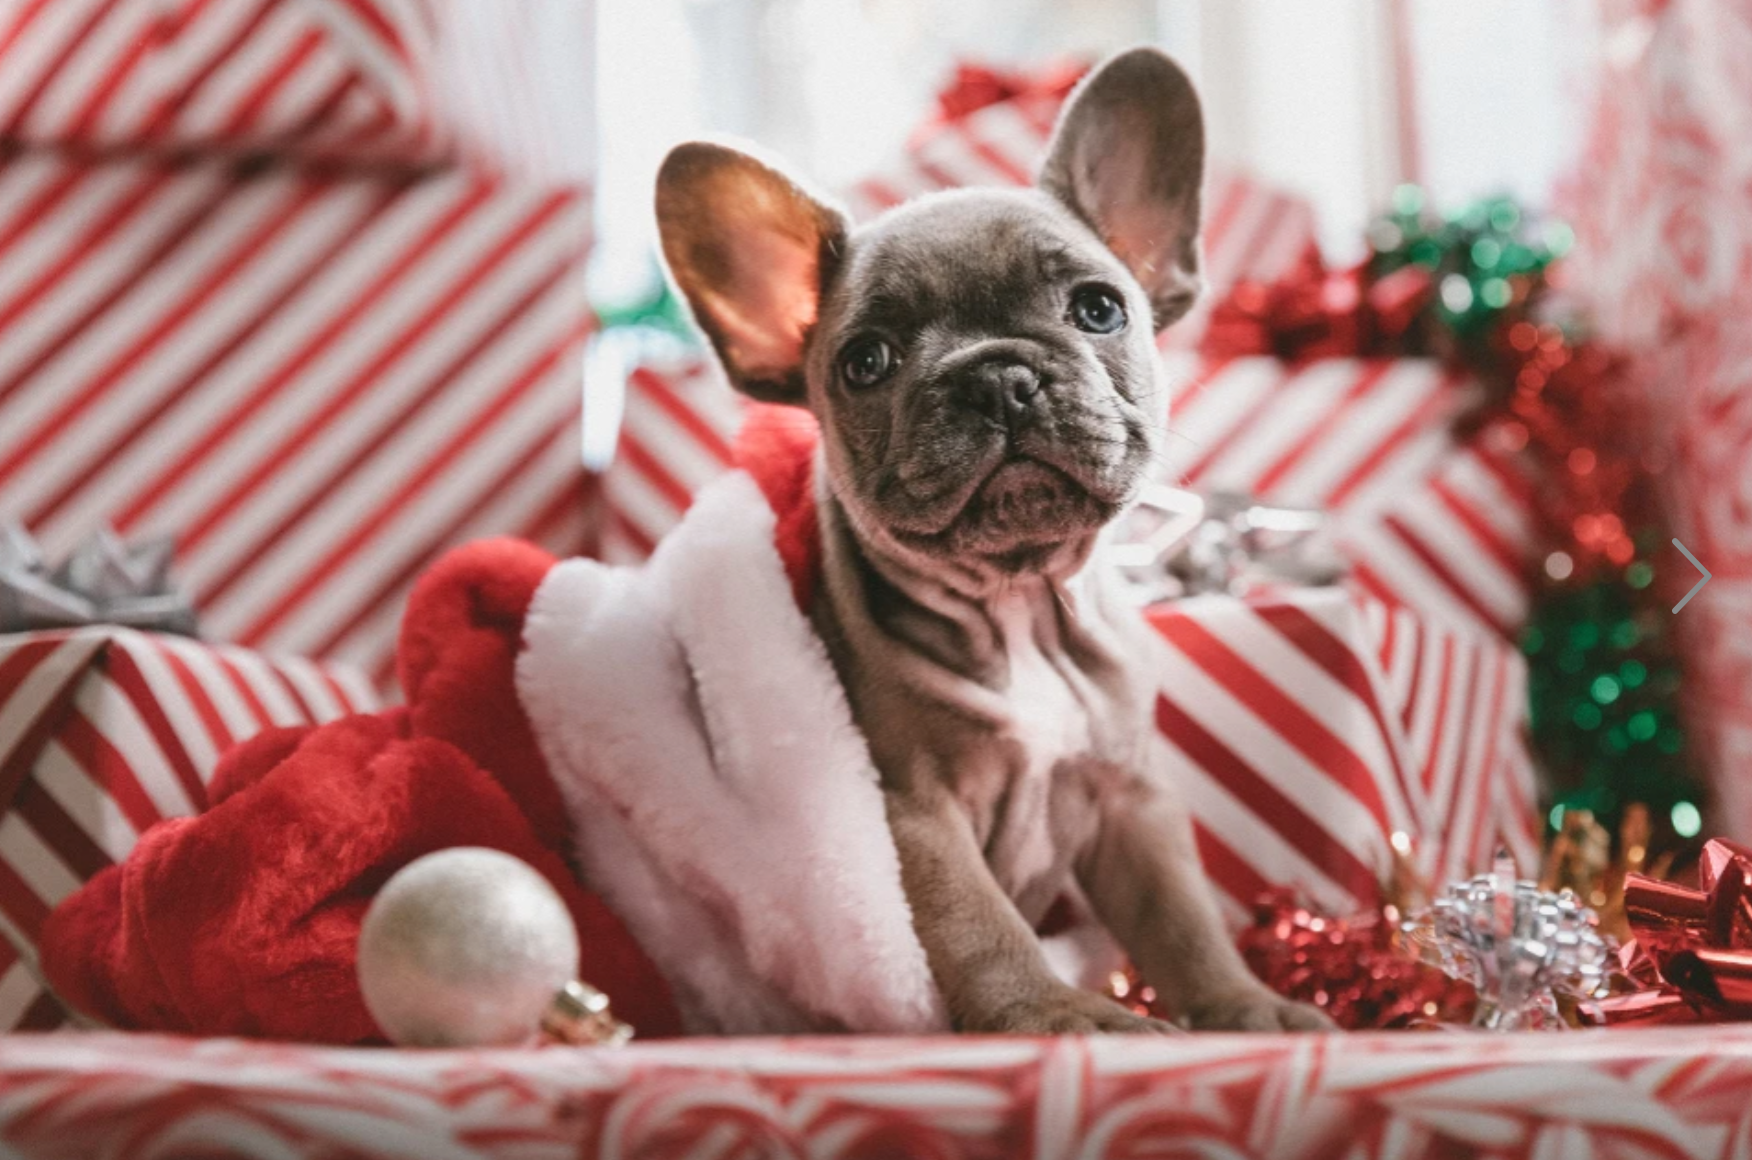 Puppy with Christmas presents